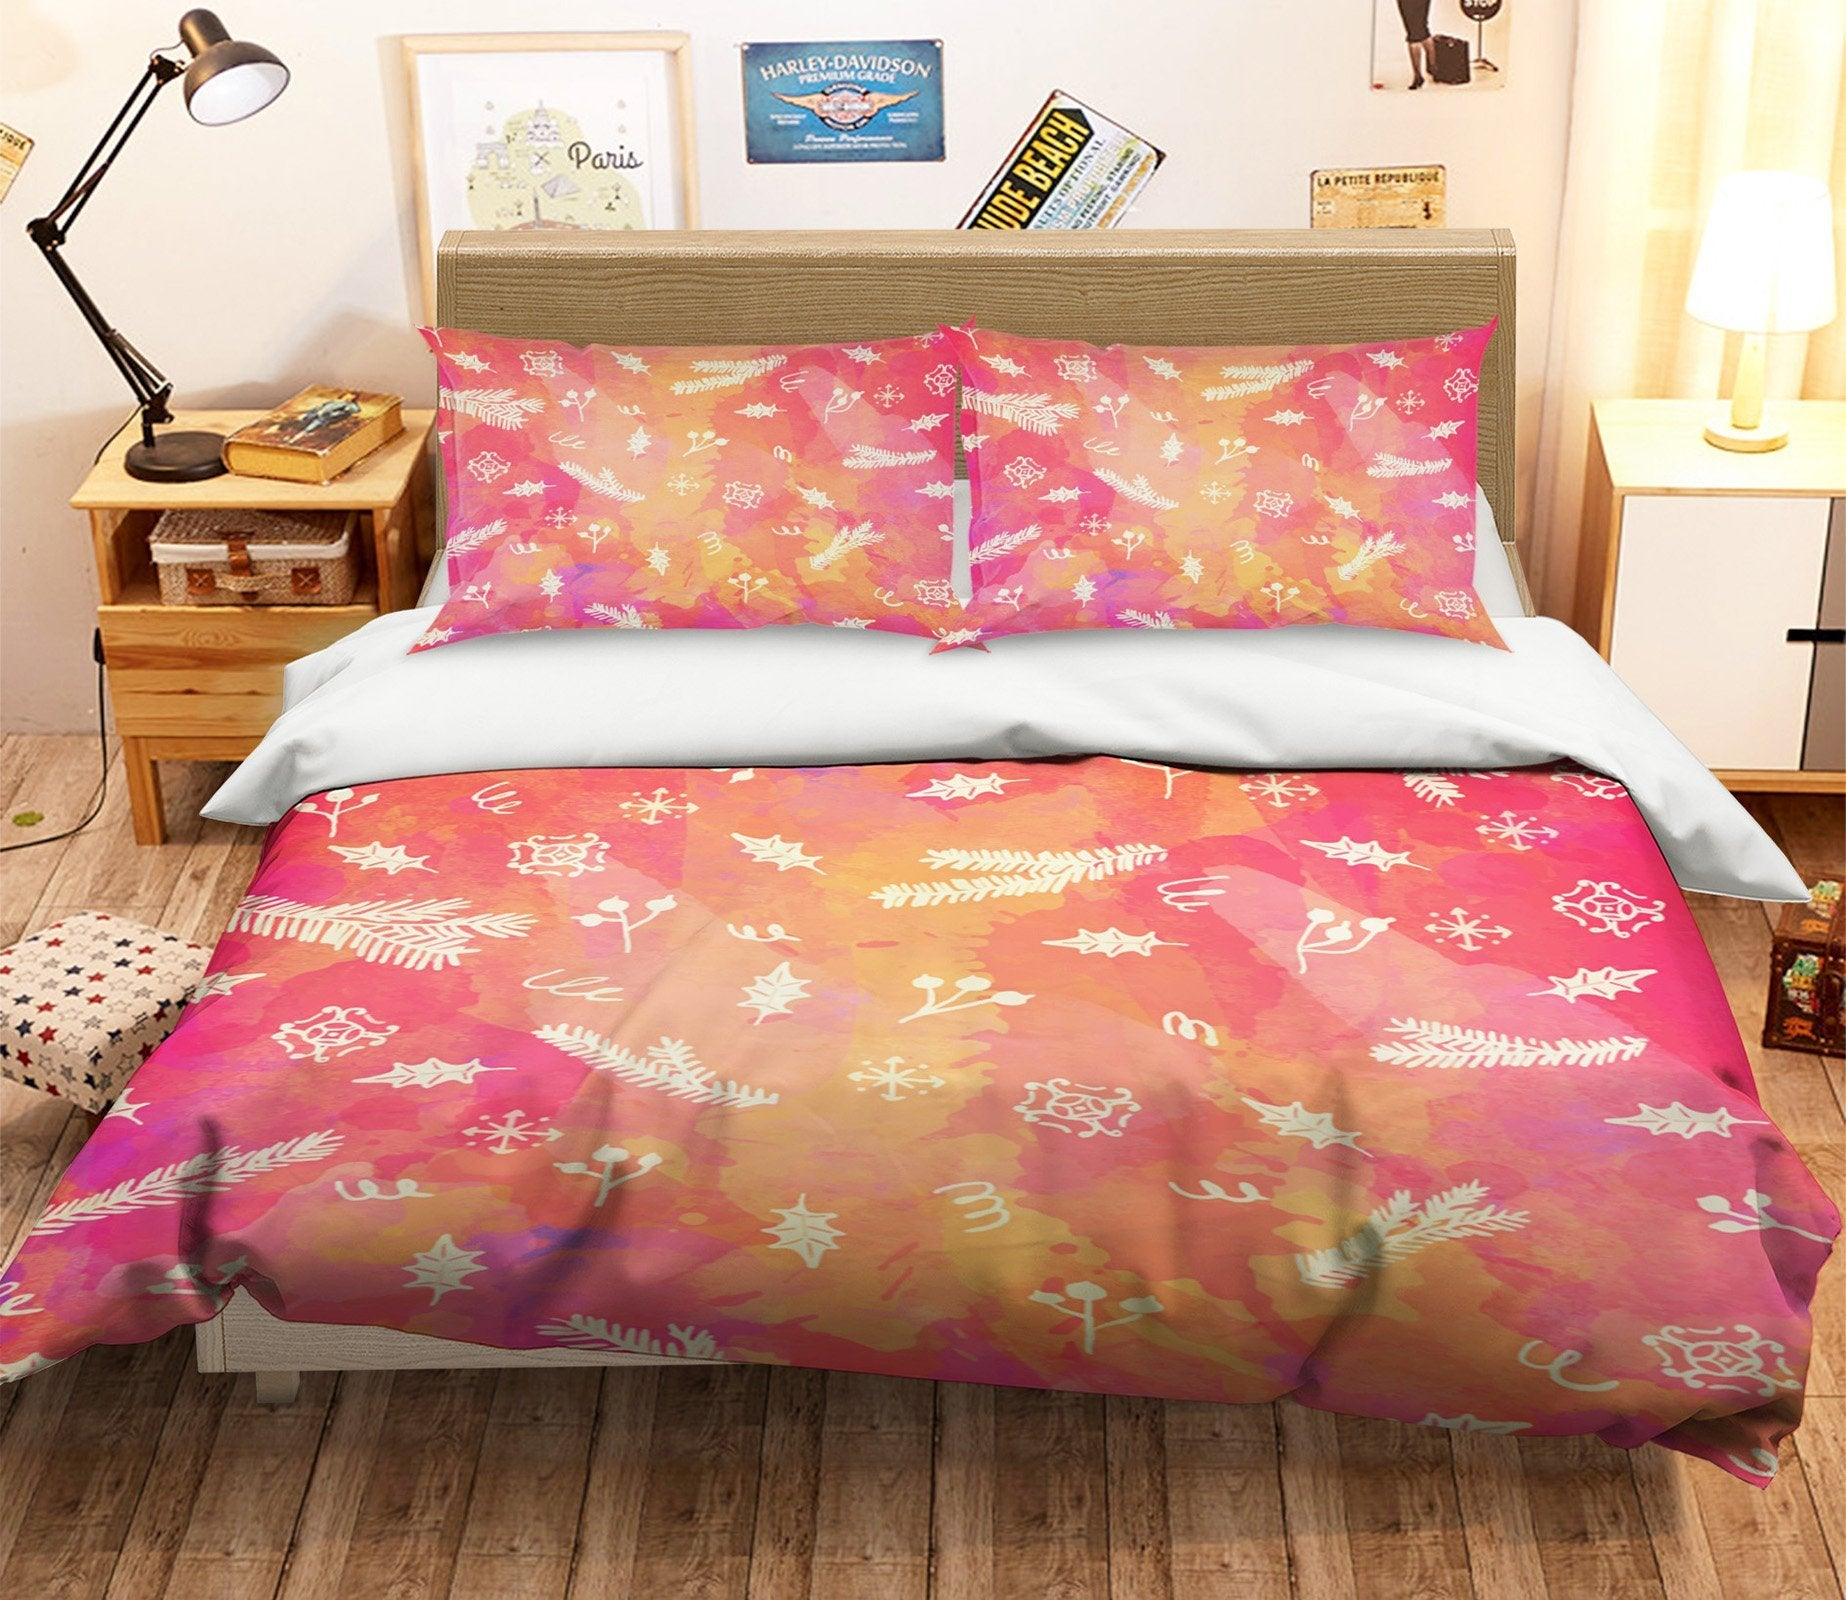 3D Christmas Falling Leaves 20 Bed Pillowcases Quilt Quiet Covers AJ Creativity Home